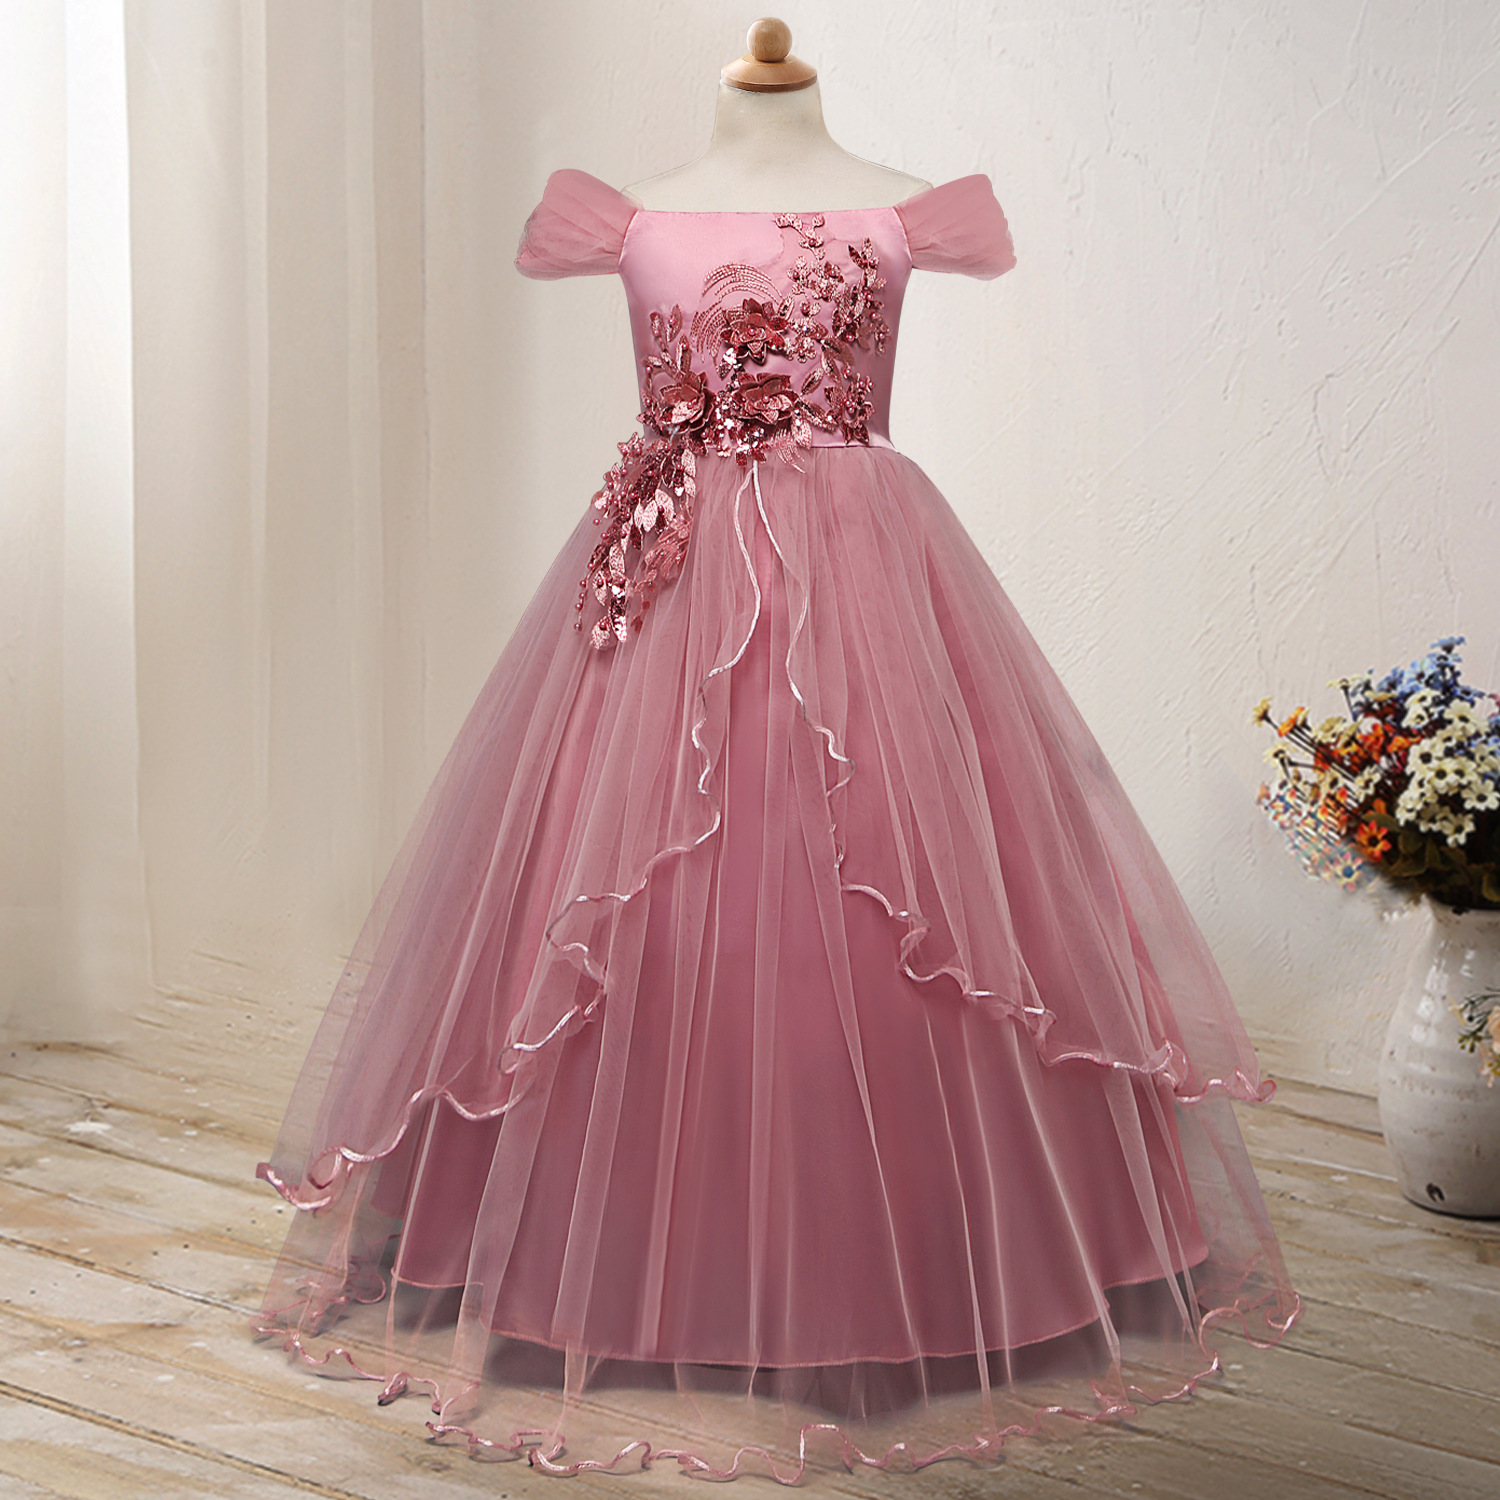 2019 New Style Child Formal Dress Long Off-Shoulder Princess Skirt Fairy Flower Long Skirts Stage Performance Puffy Formal Dress